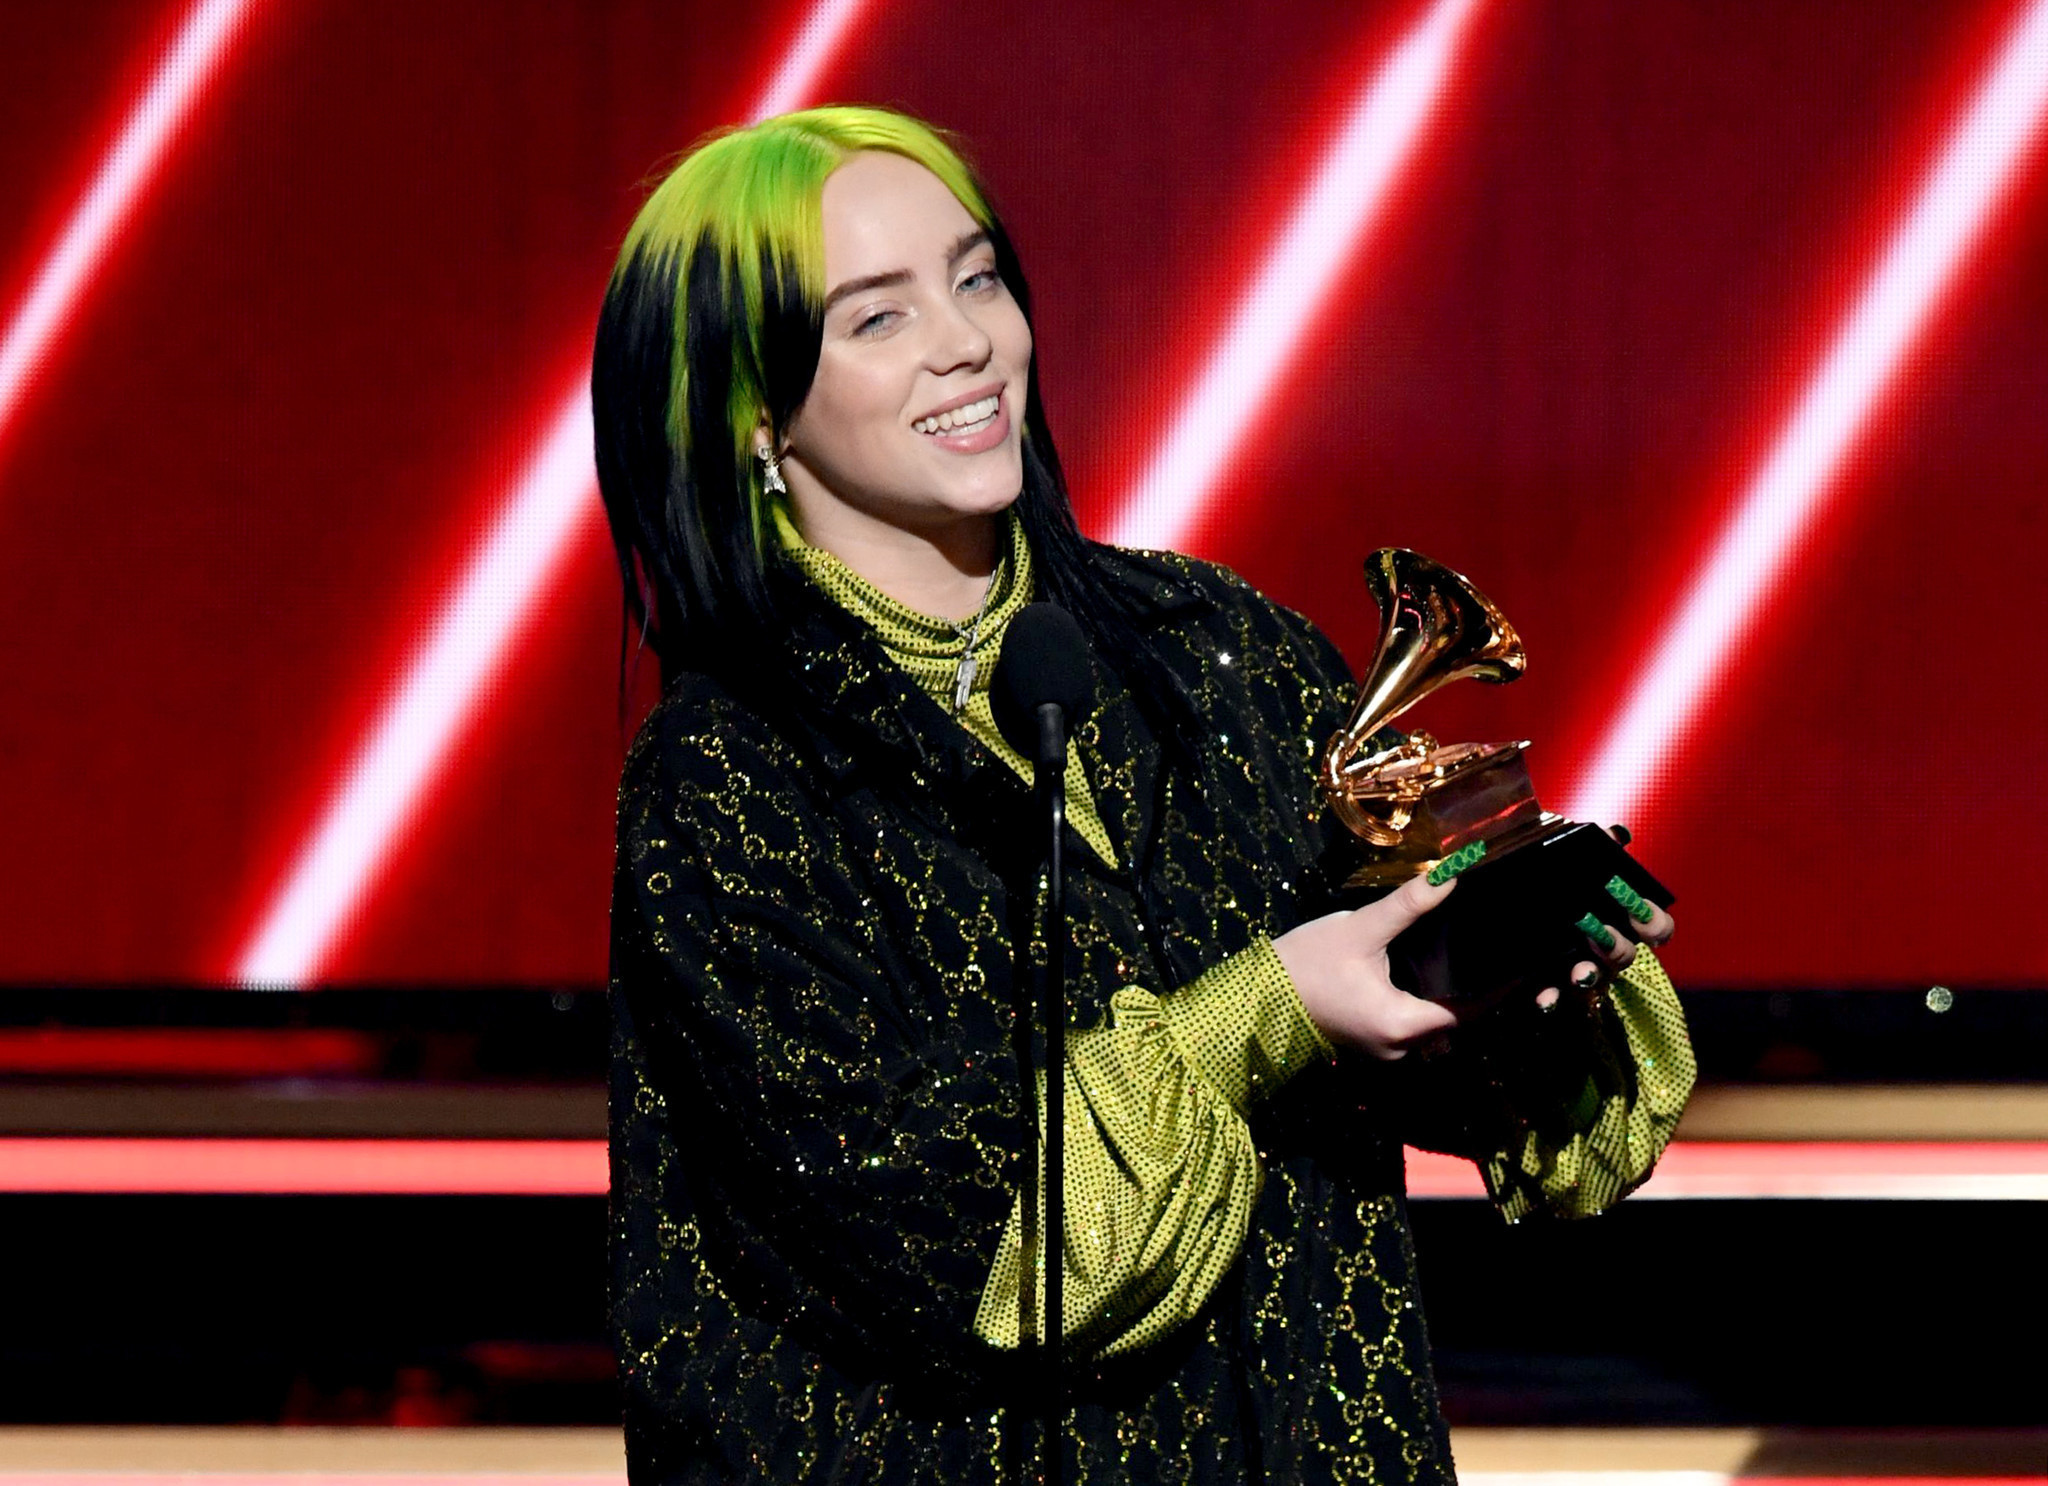 Grammys 2020: Winners and losers of the 62nd primetime awards show